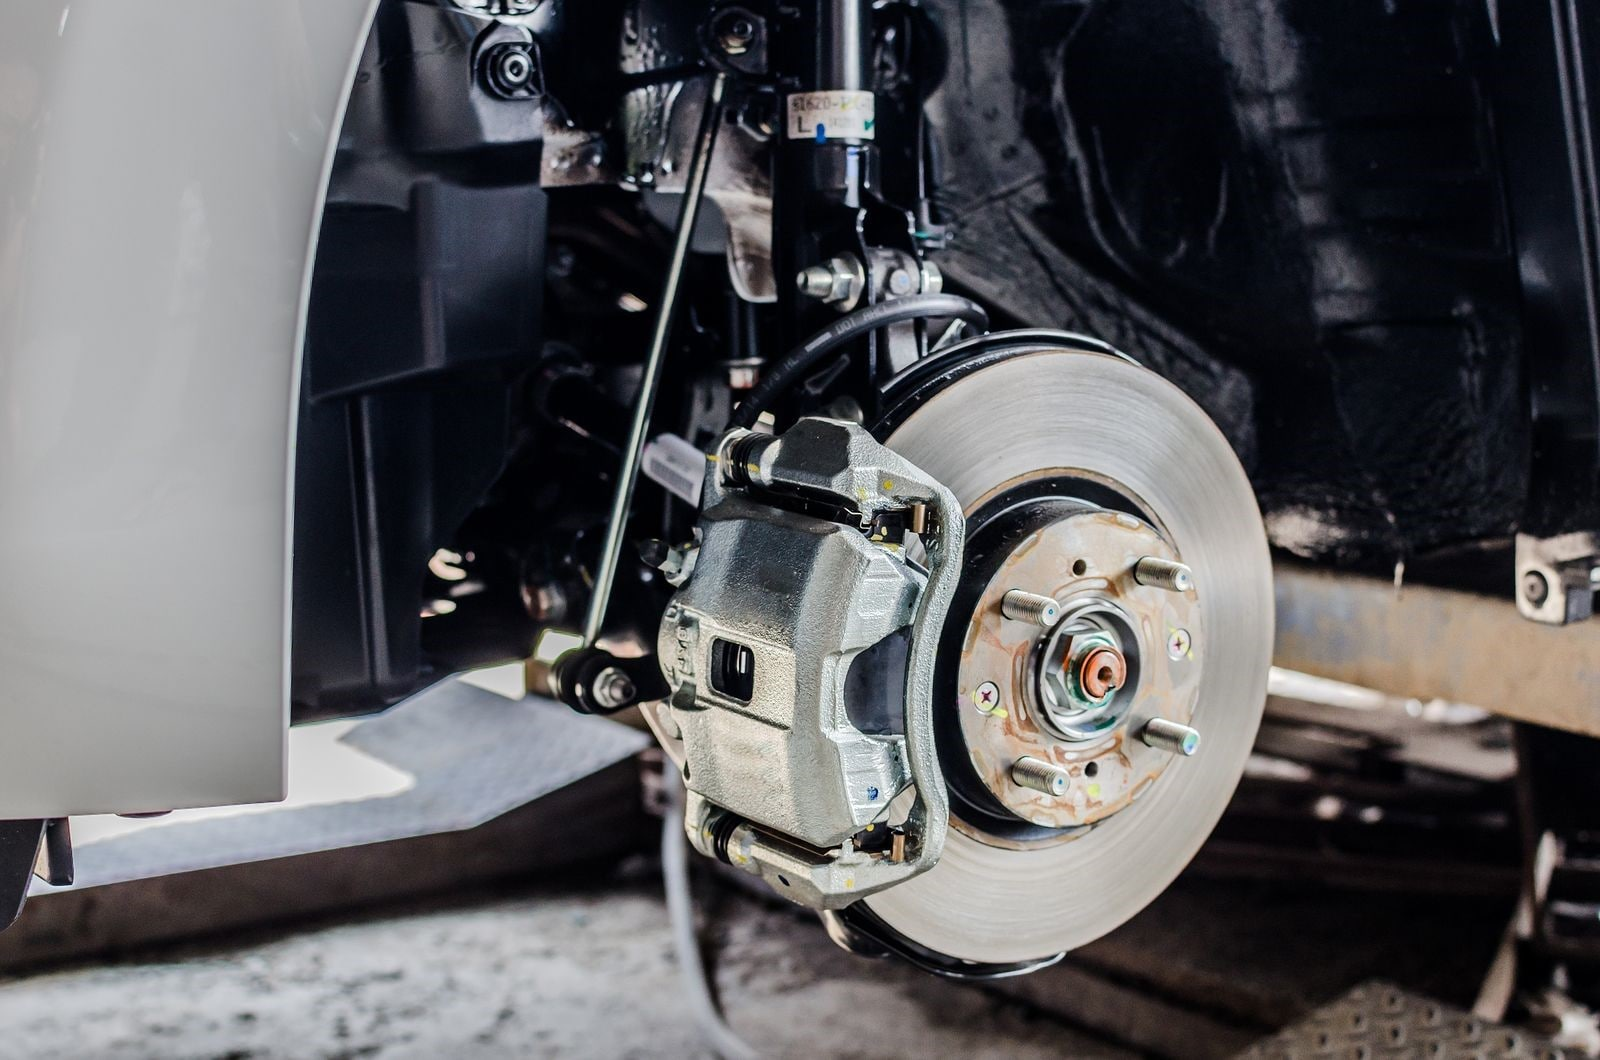 Experiencing These Problems? Time to Service or Replace Your Brakes